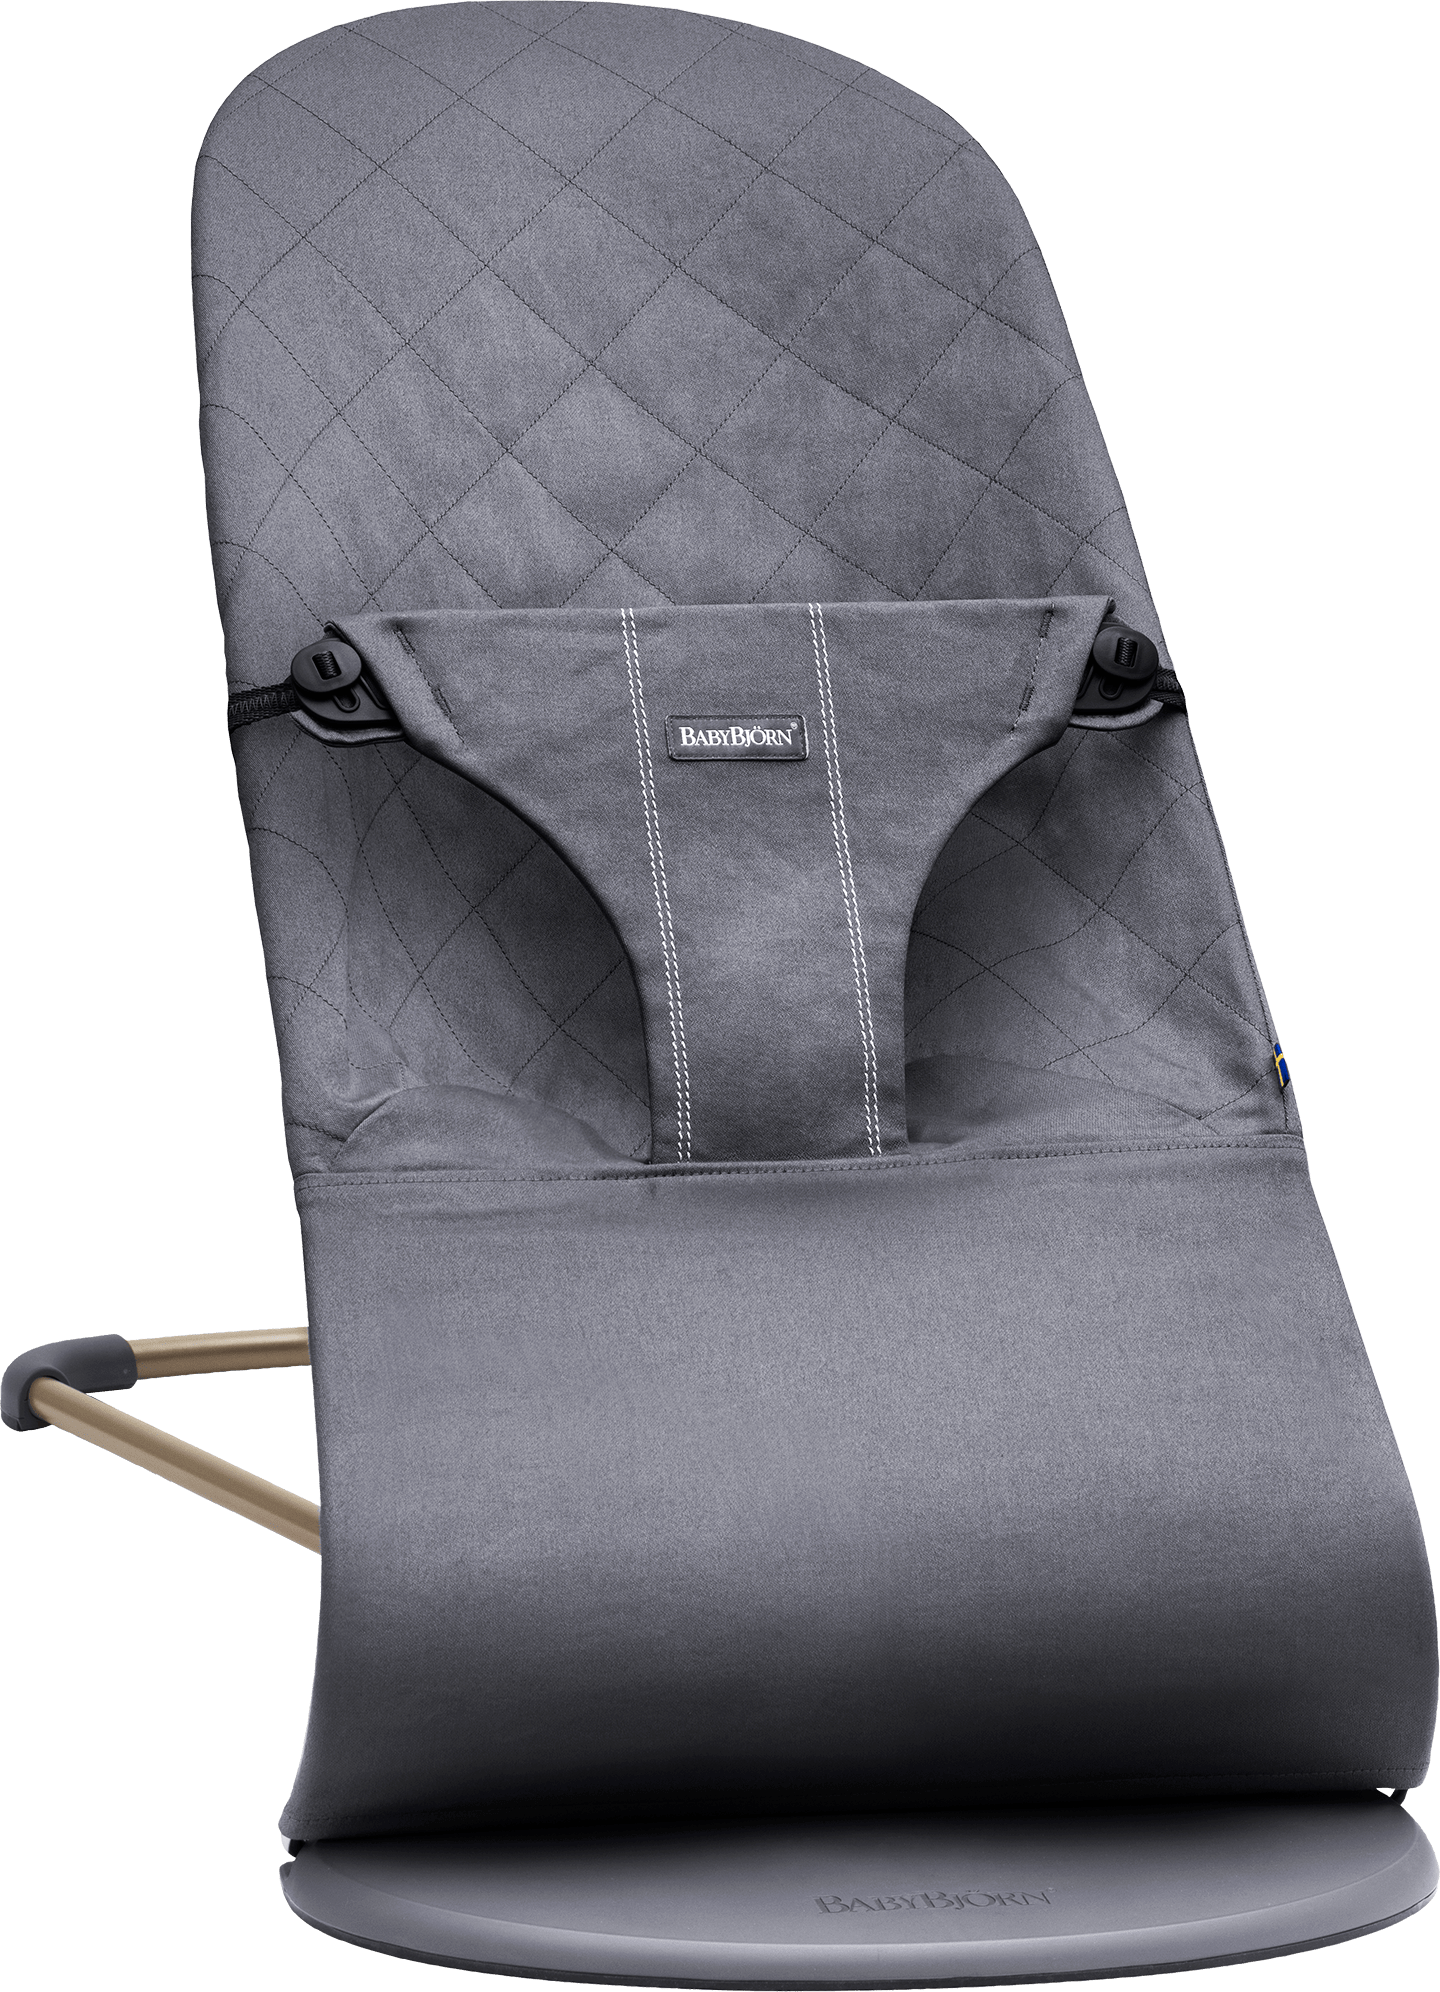 BABYBJÖRN Bouncer Bliss in anthracite cotton, an ergonomic and cozy baby bouncer with gentle rocking.